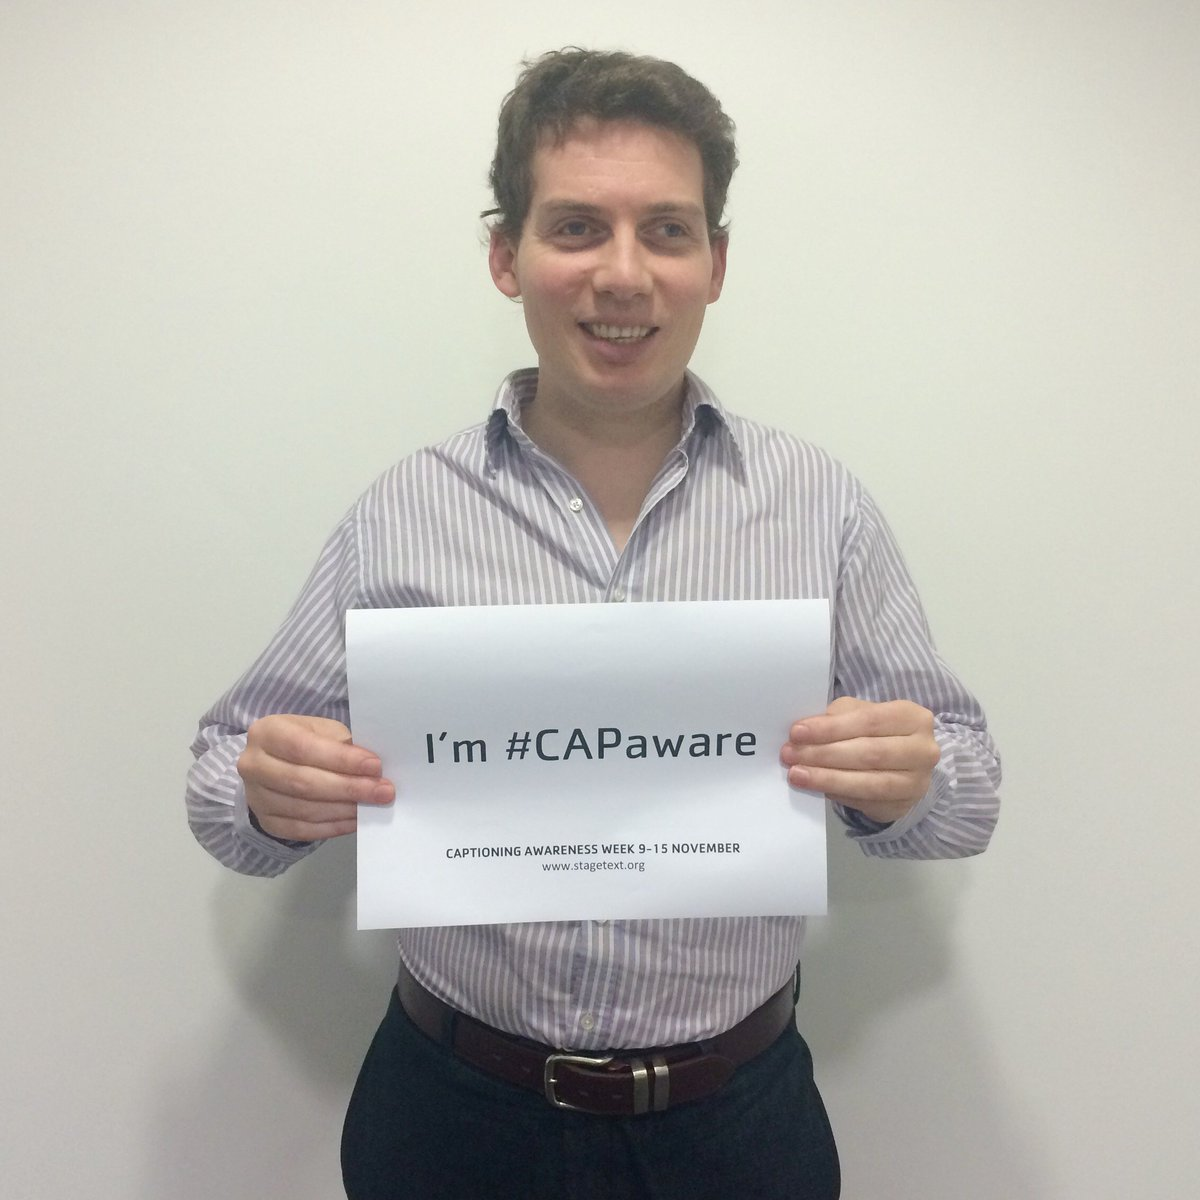 DT's @jonathanbaden is #CAPaware. Are you? https://t.co/uFe4qbds4w